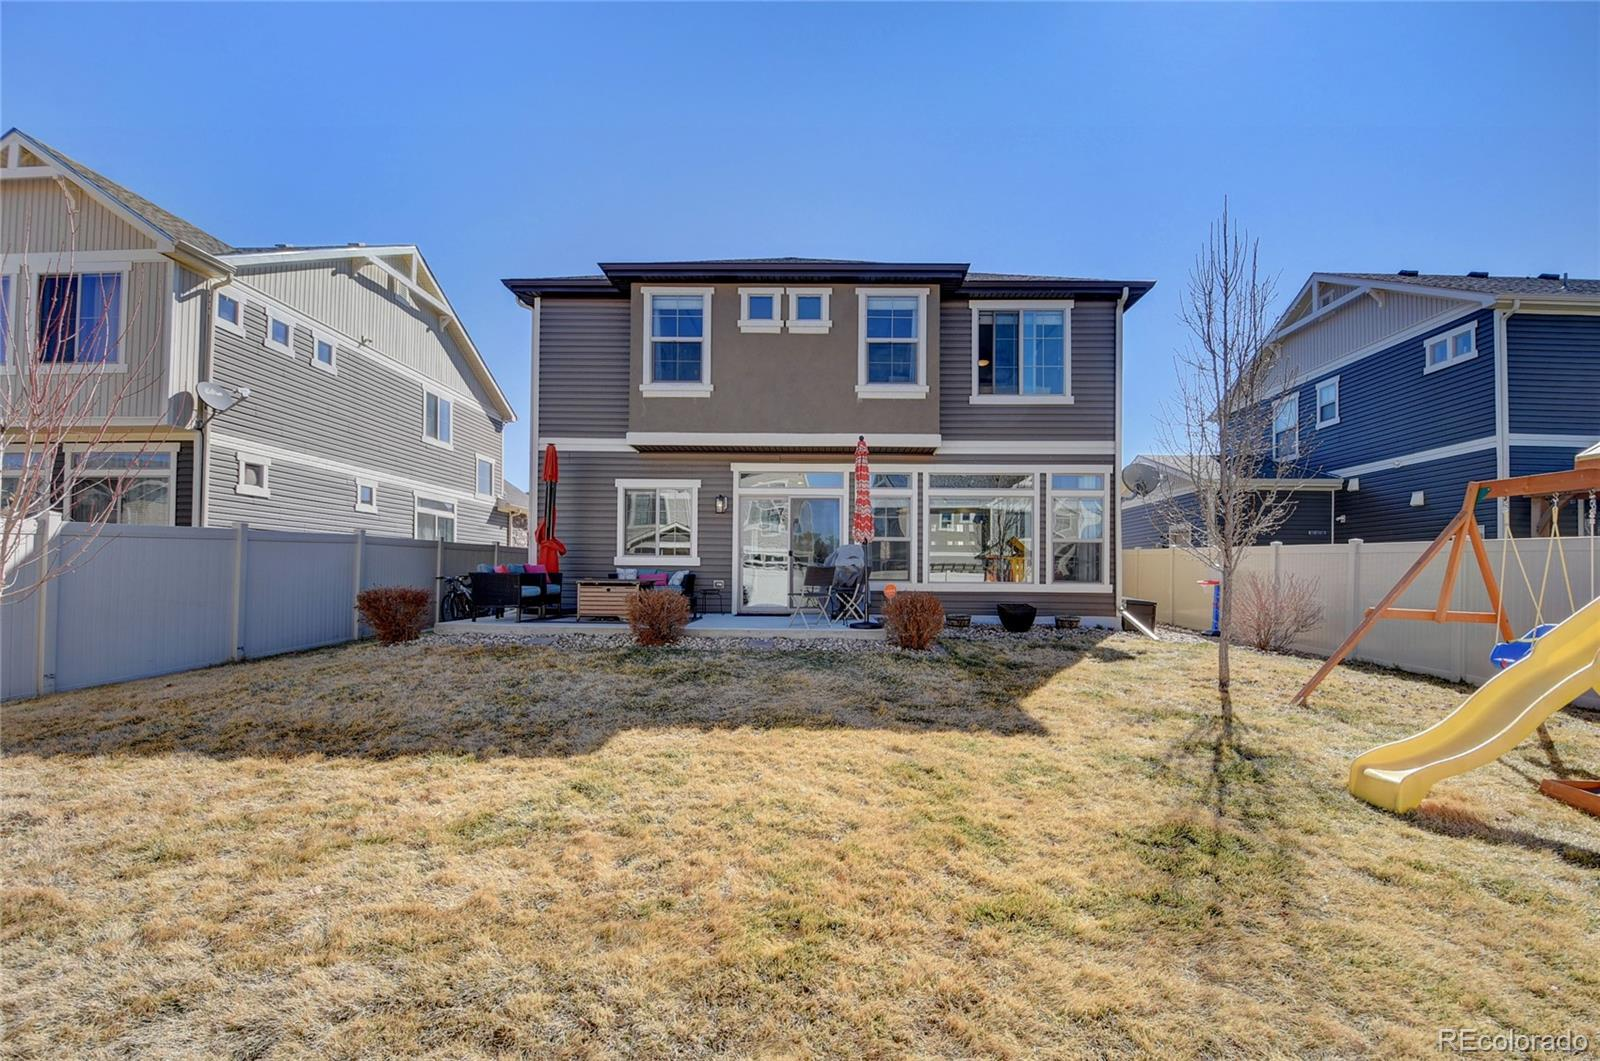 MLS# 3270712 - 34 - 4953 Cathay Court, Denver, CO 80249